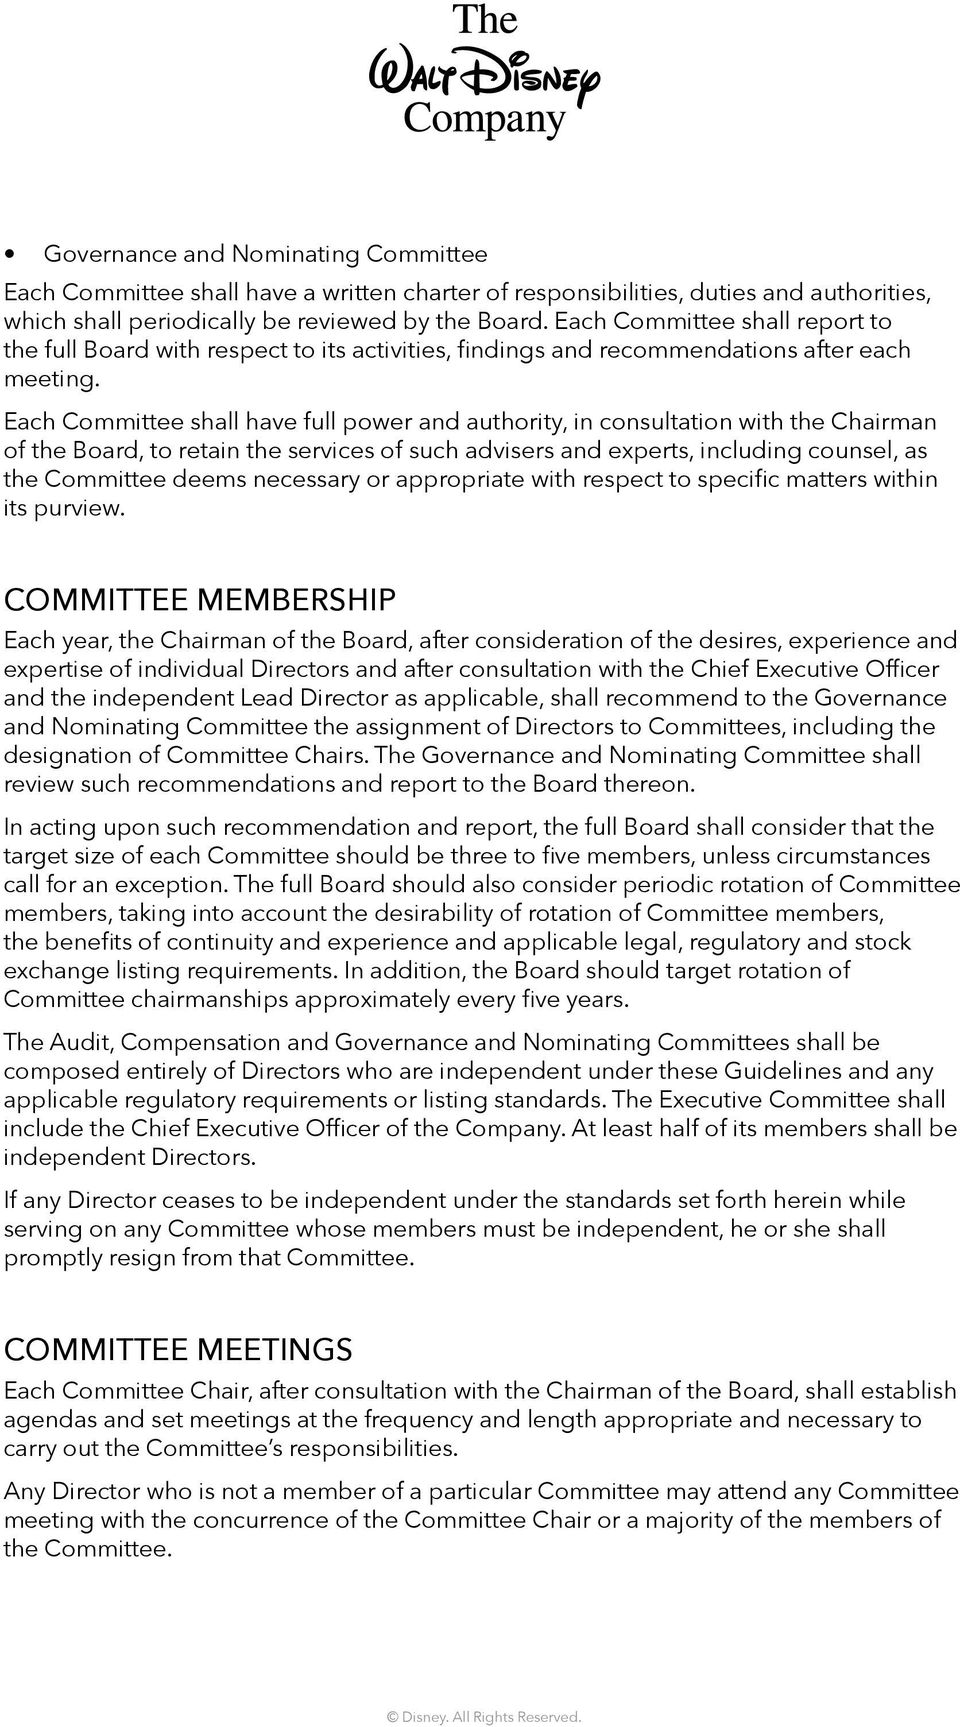 Each Committee shall have full power and authority, in consultation with the Chairman of the Board, to retain the services of such advisers and experts, including counsel, as the Committee deems